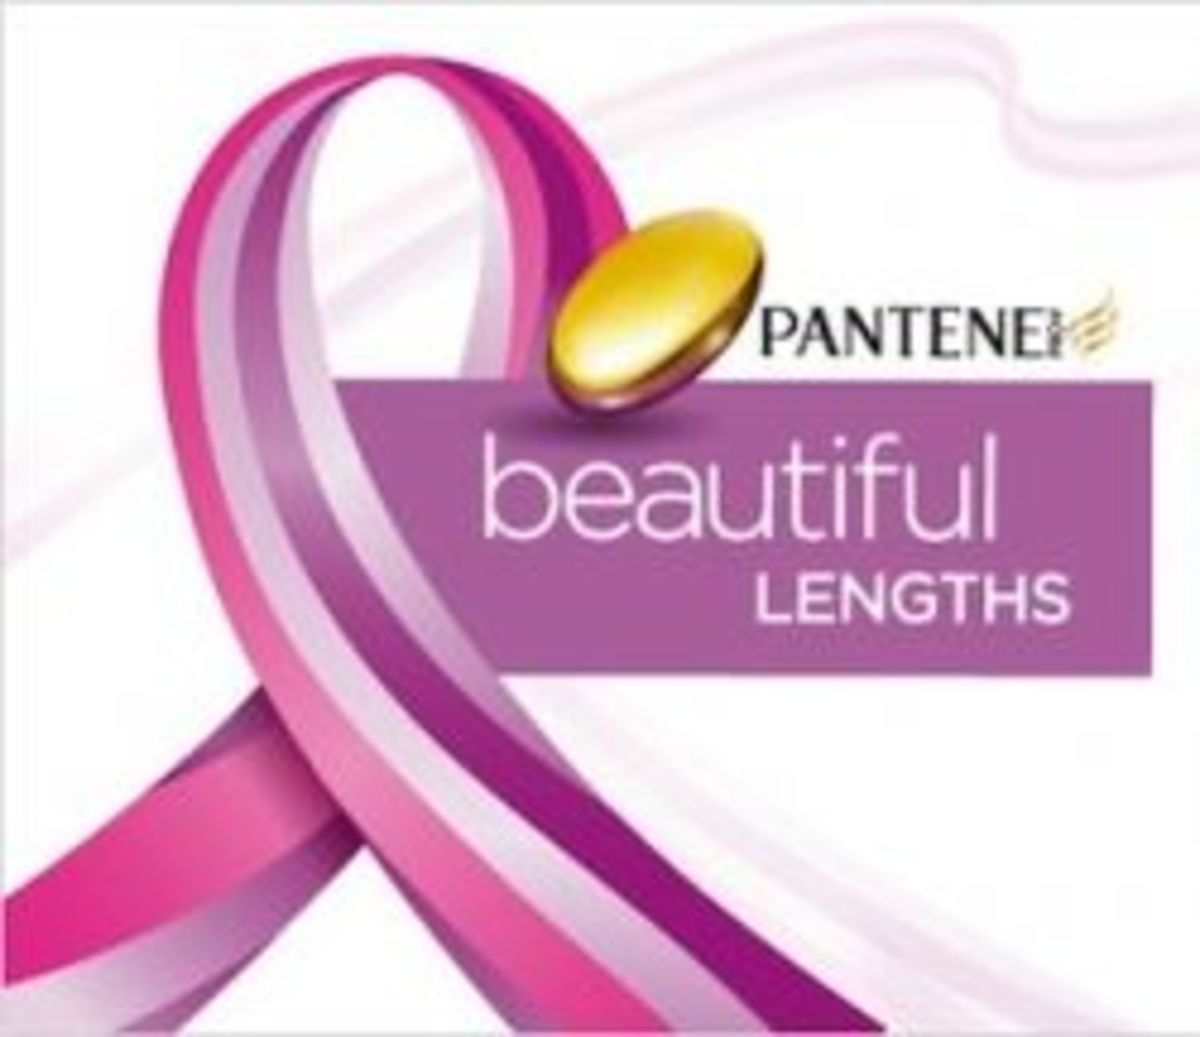 Pantene beautiful lengths hair donation program